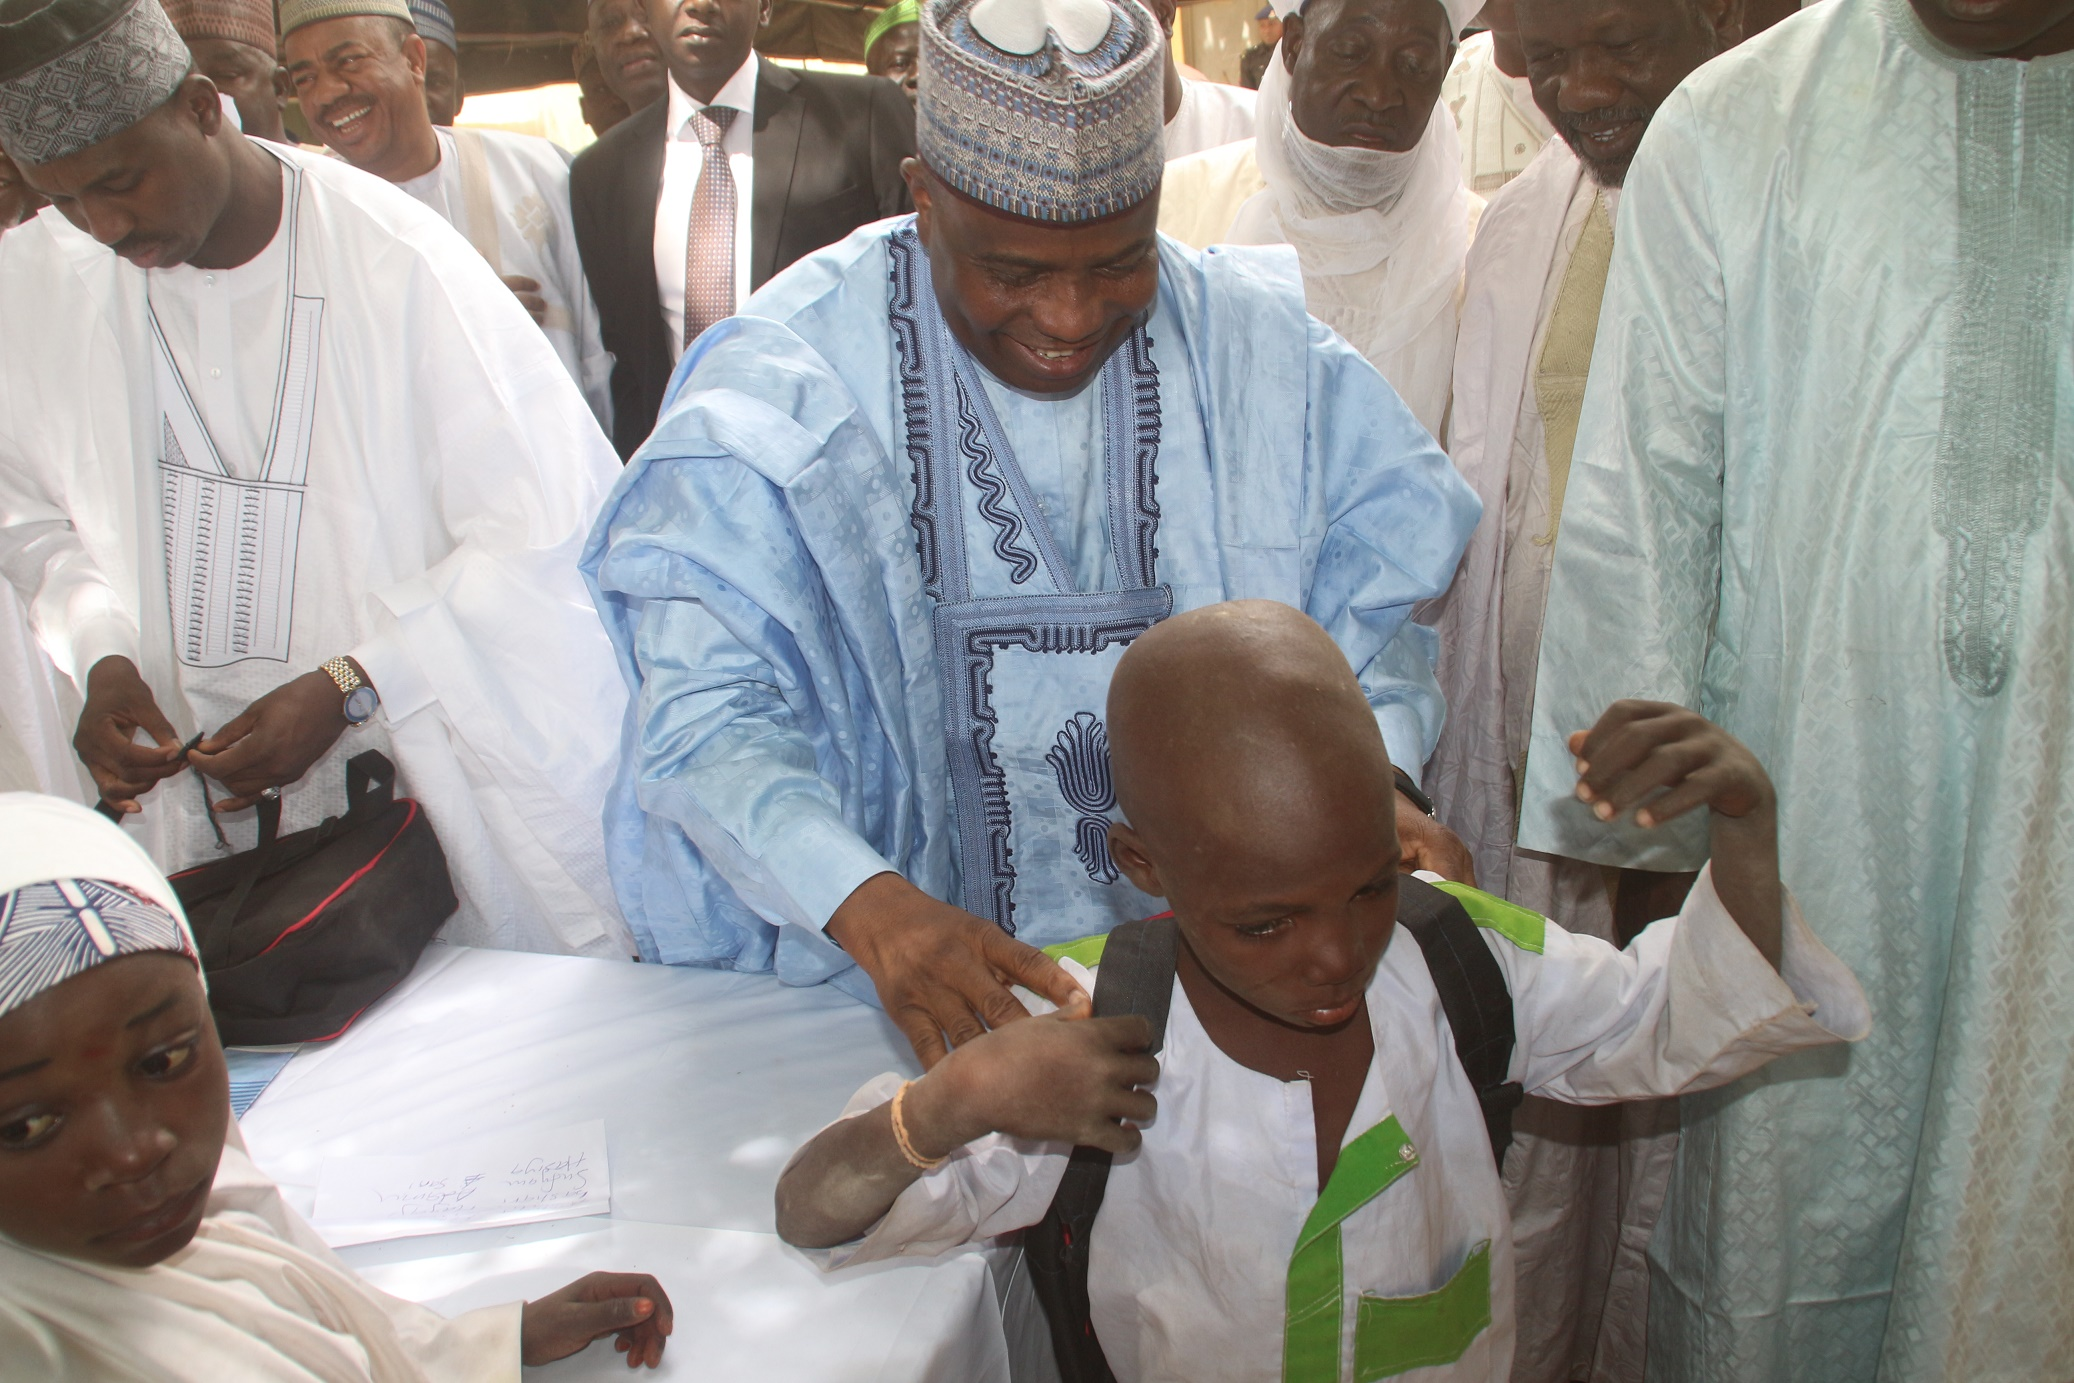 Enrollment 1: Governor Aminu Waziri Tambuwal presenting a school bag to young Safiyanu Adamu after he was enrolled in school for the first time, at the flag-off of Sokoto state school enrollment drive in Riji, Rabah LGA.